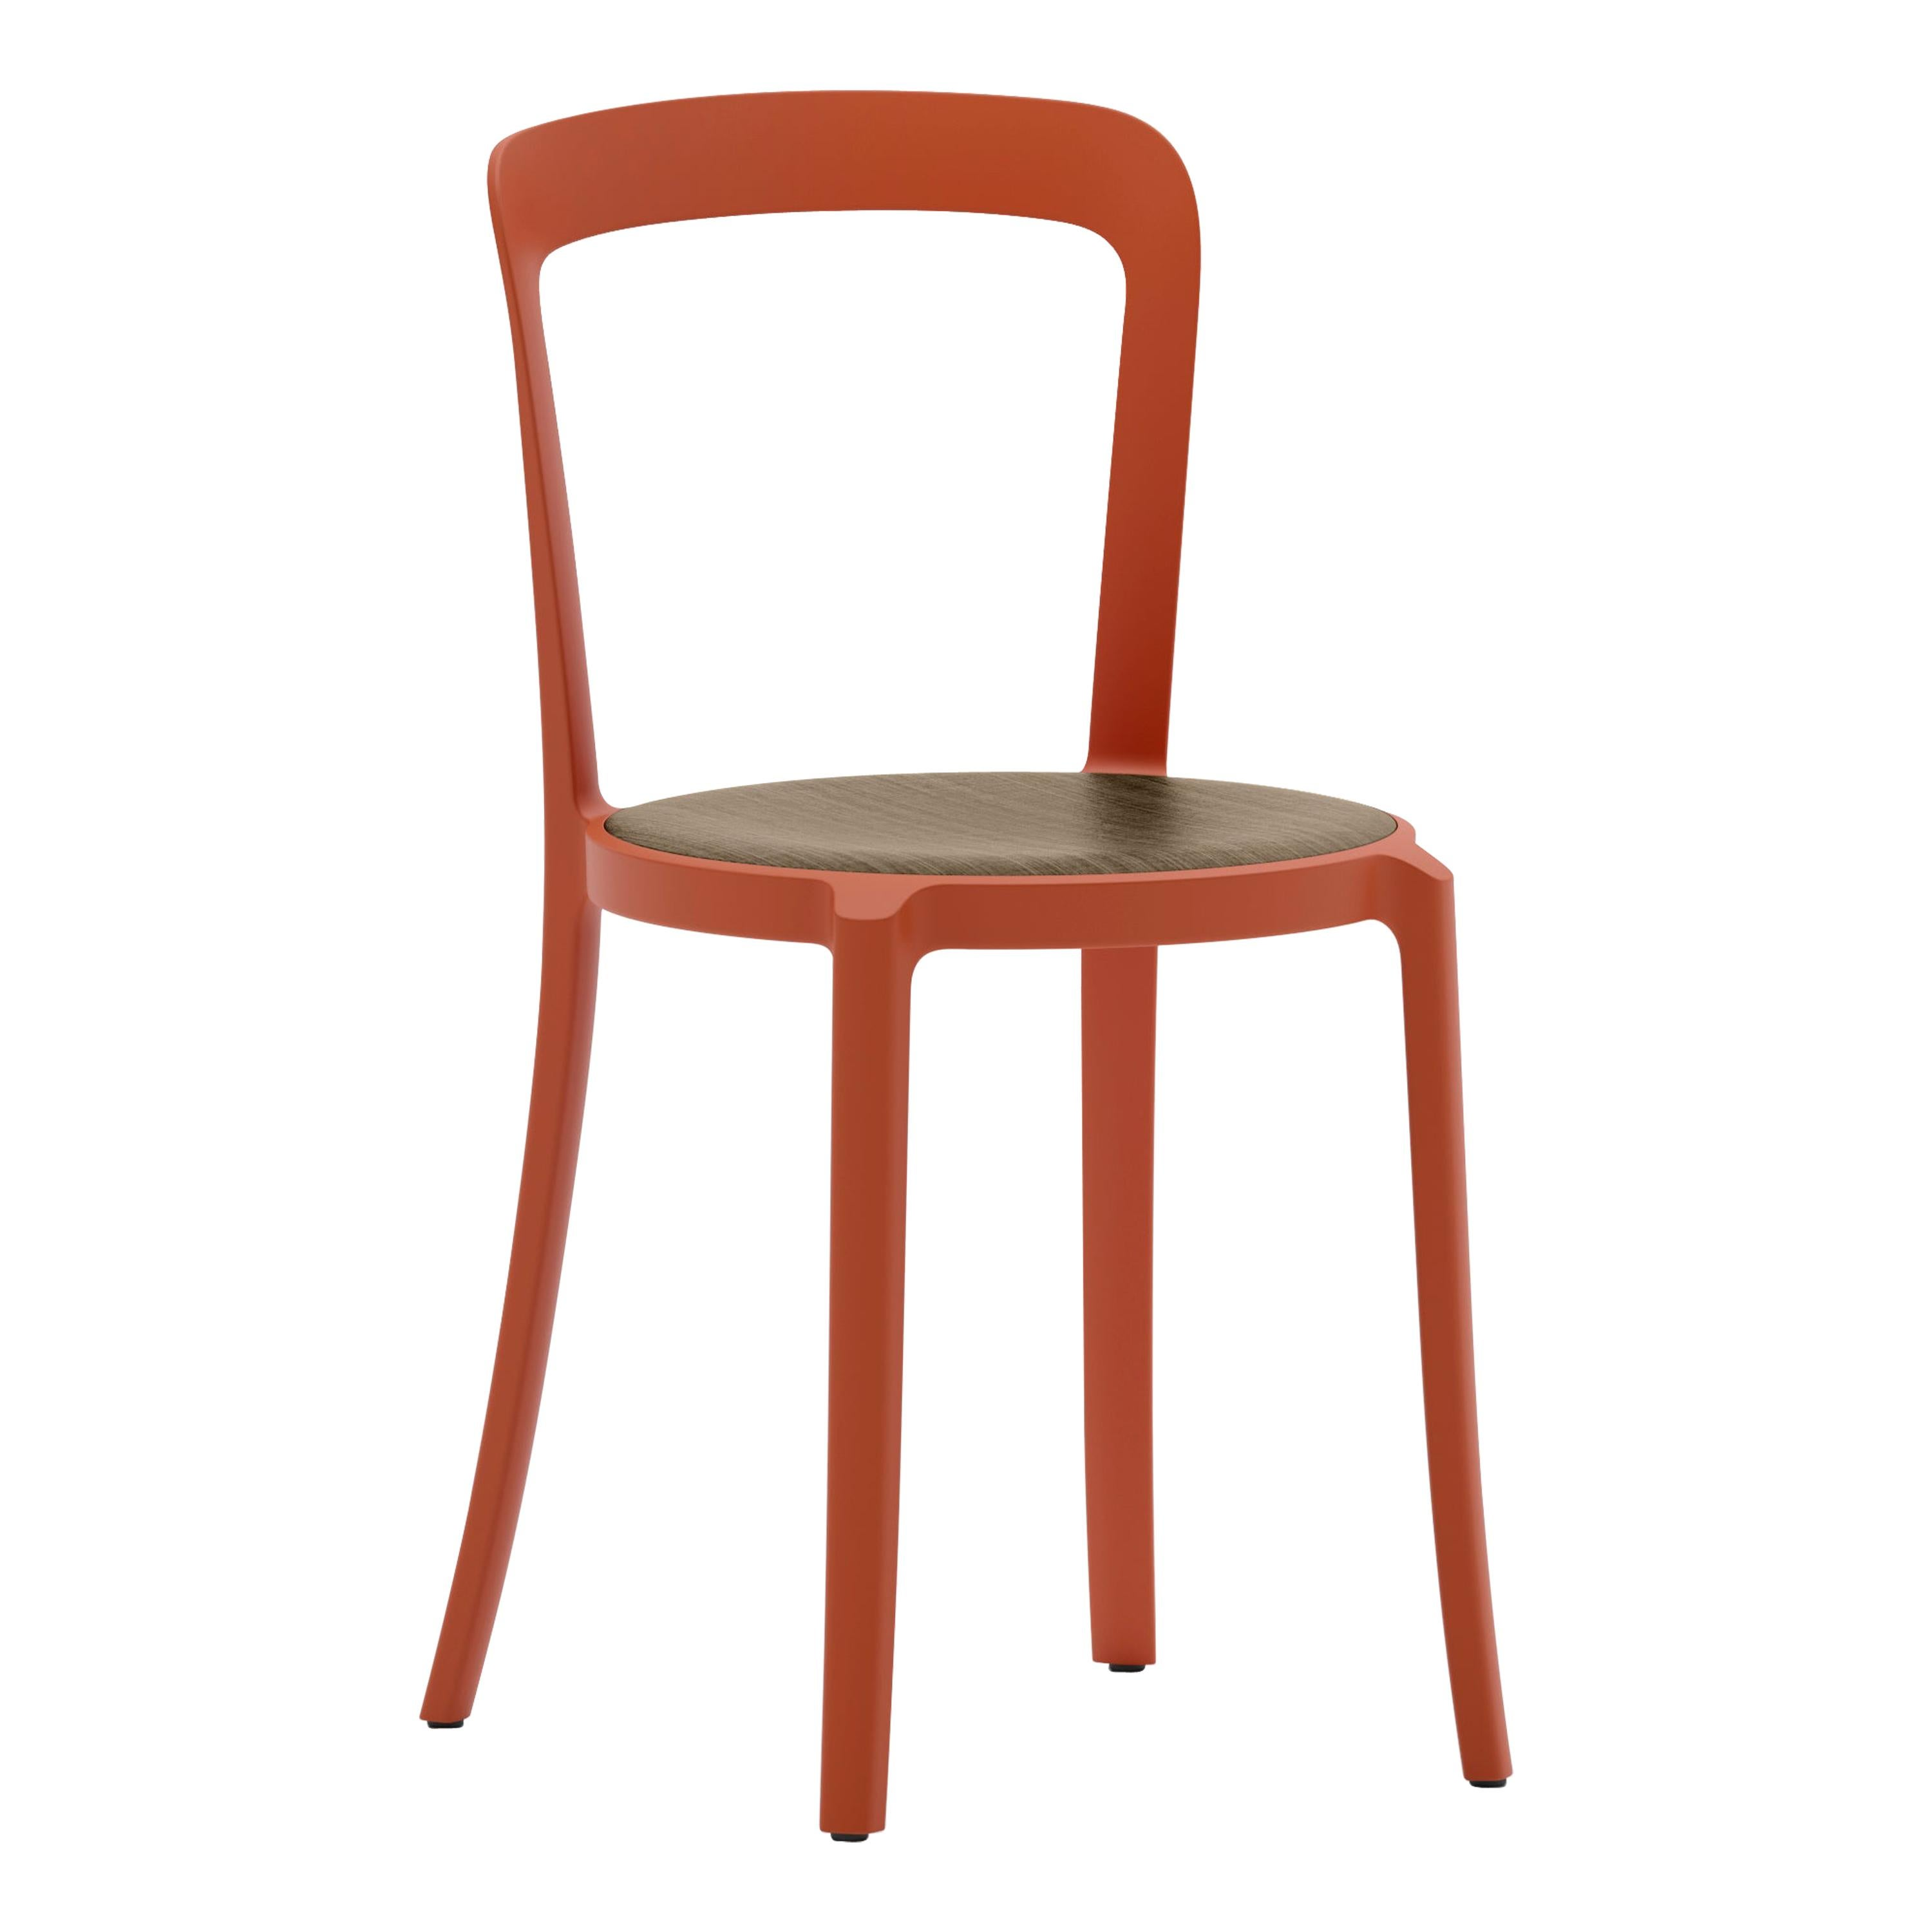 Emeco On & On Stacking Chair in Orange with Walnut seat by Barber & Osgerby